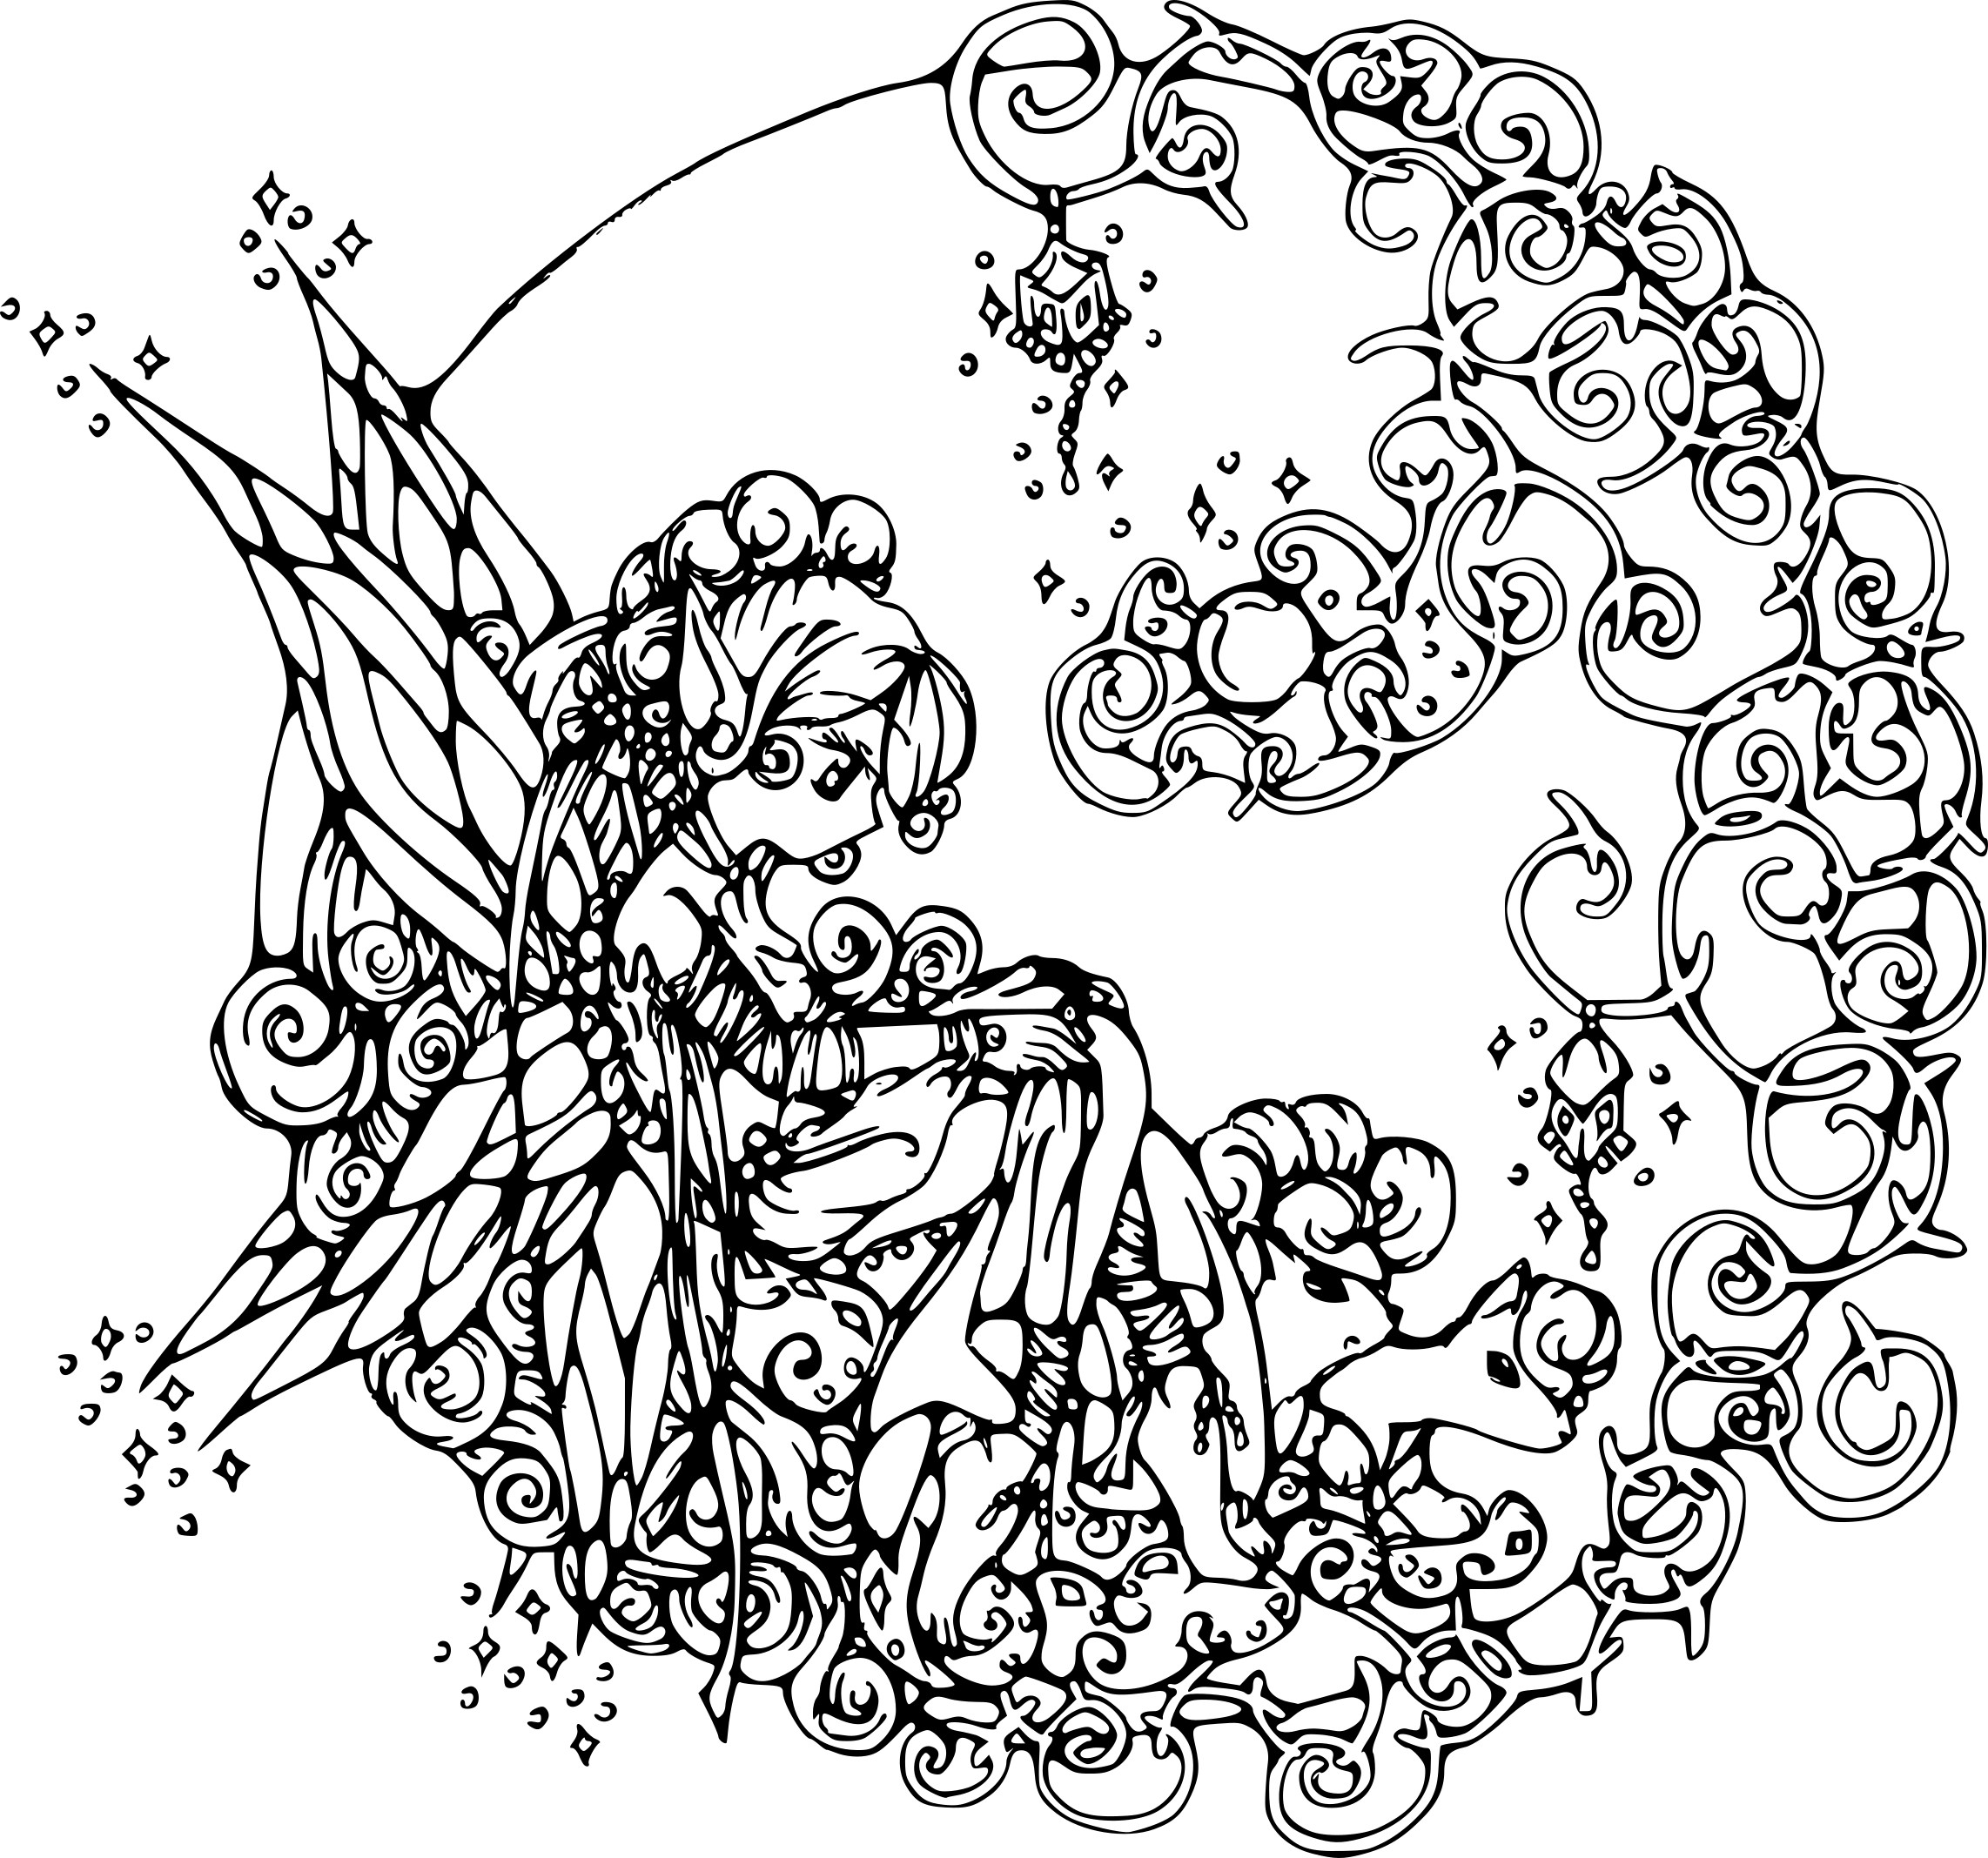 Coloriage f e adulte imprimer - Fee coloriage ...